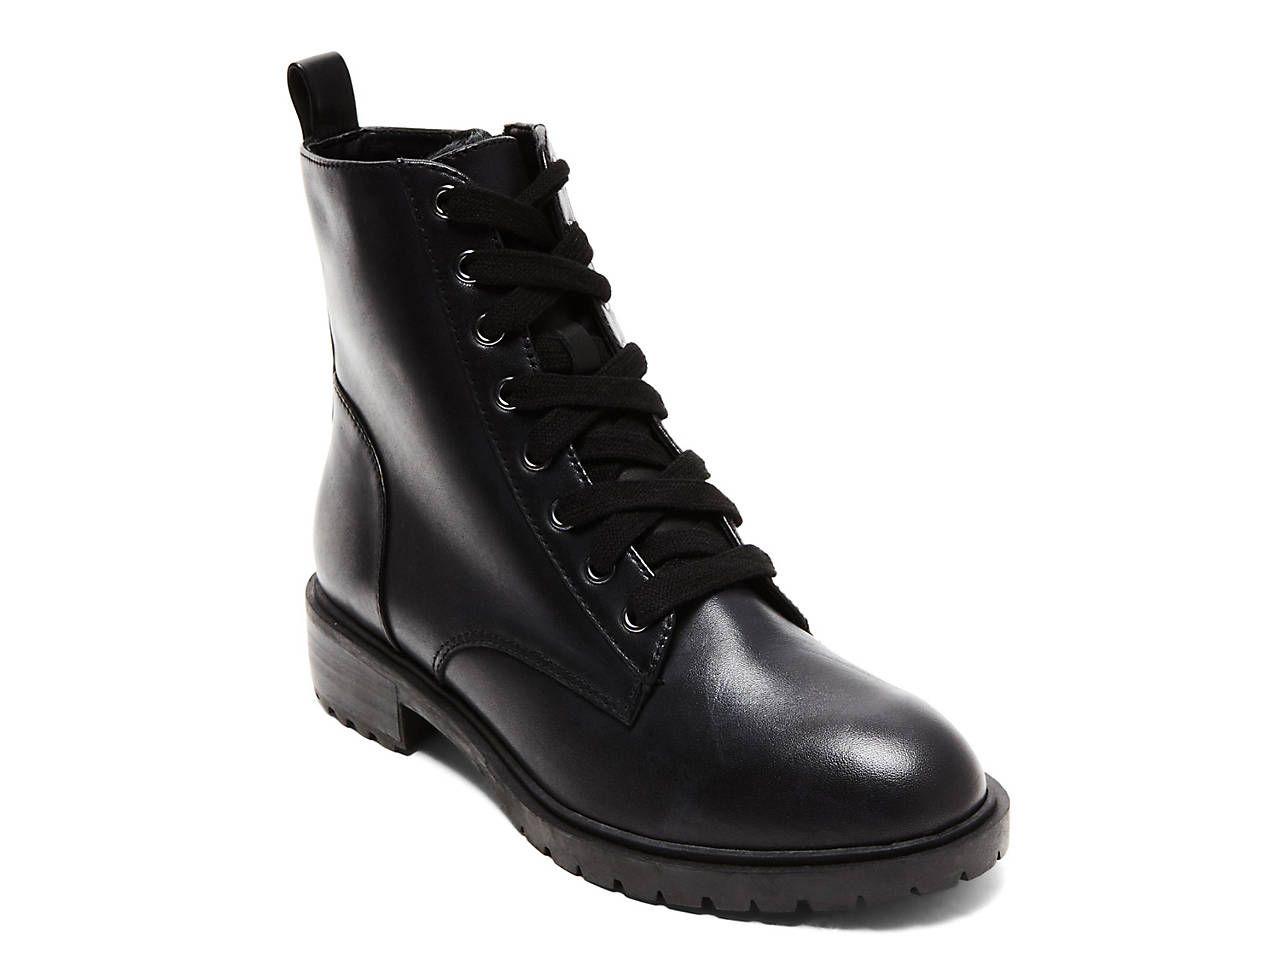 010018dd909 Steve Madden Officer Combat Boot Women s Shoes